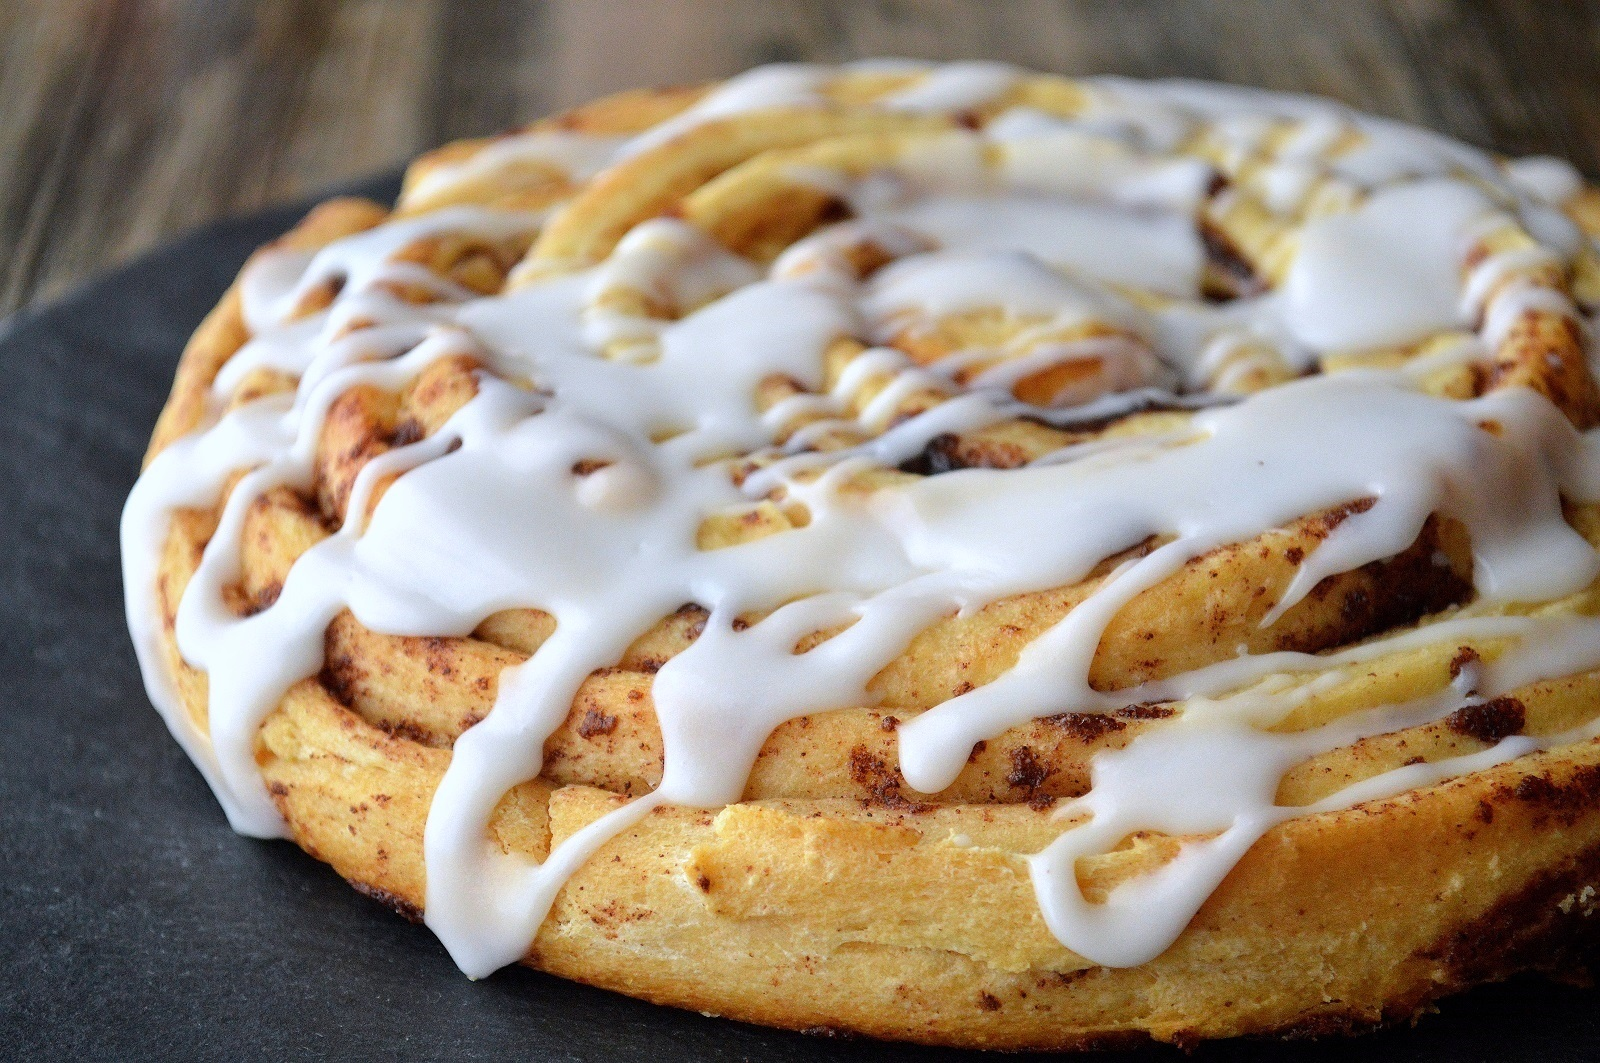 Giant Cinnamon Bun Cake! It's fun, moist & delicious and all you need is a can of Pillsbury Grands Cinnamon Buns!